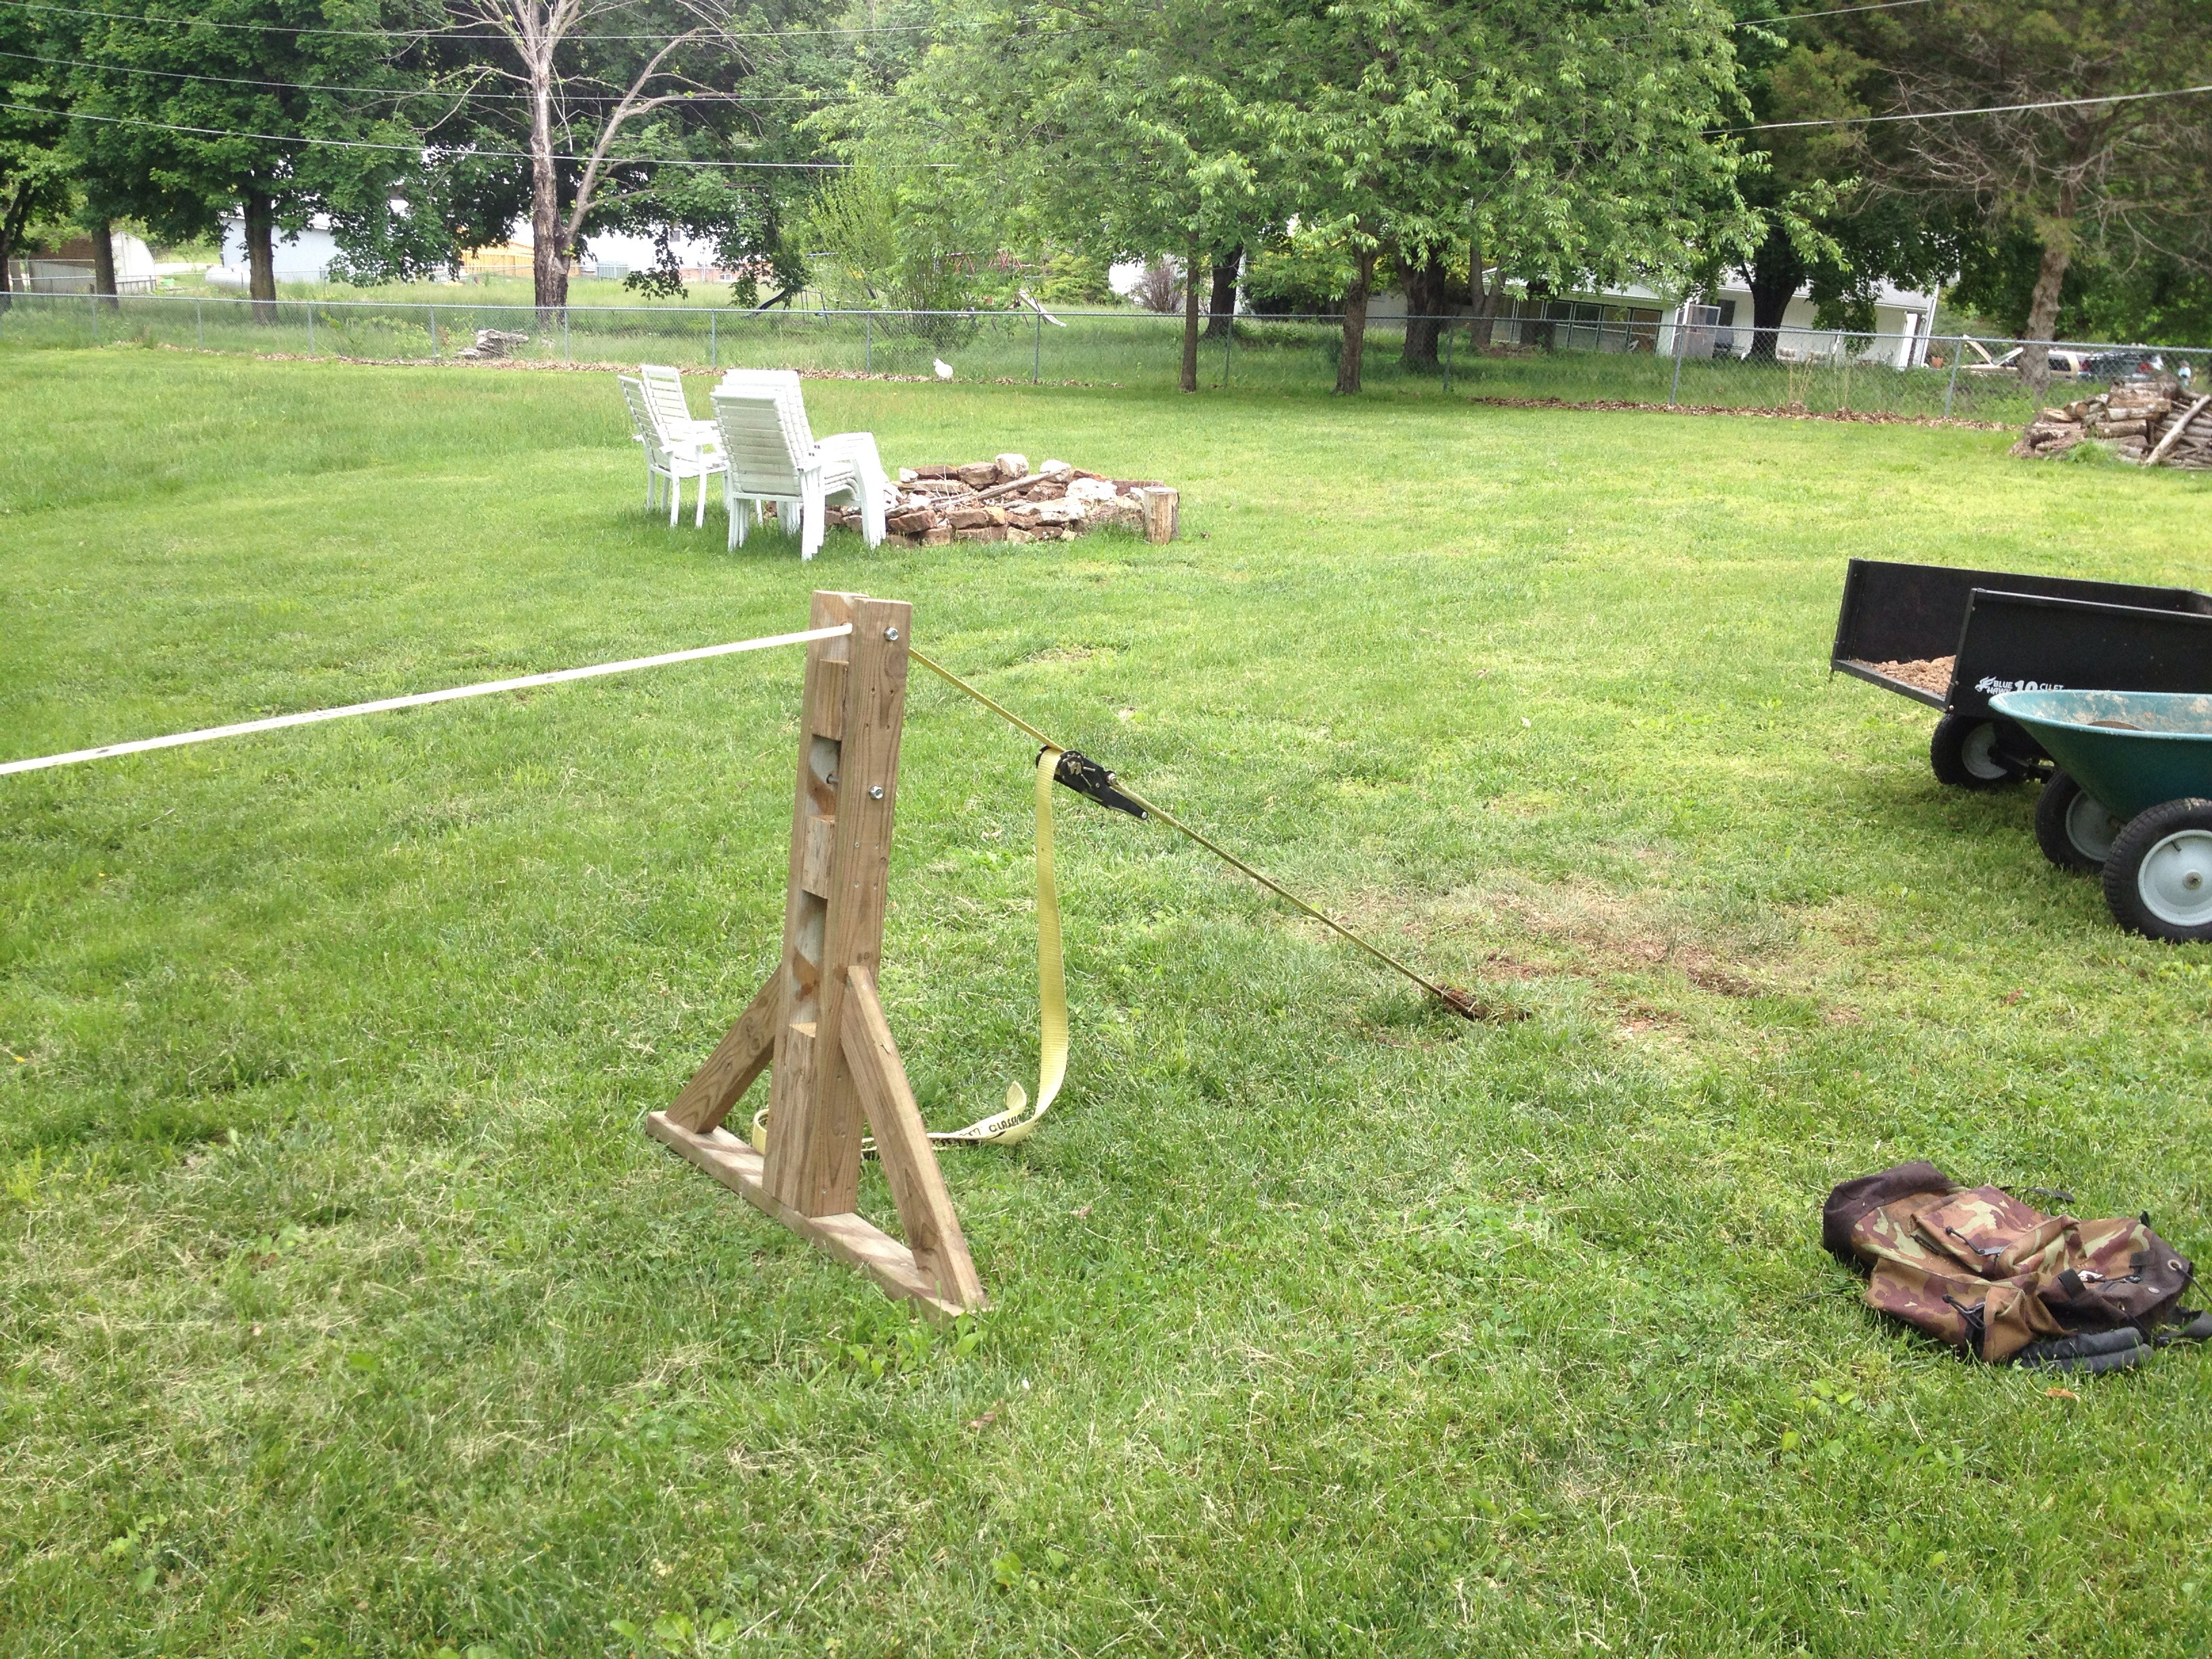 Picture of Slackline Without Trees - How to Build an A-Frame